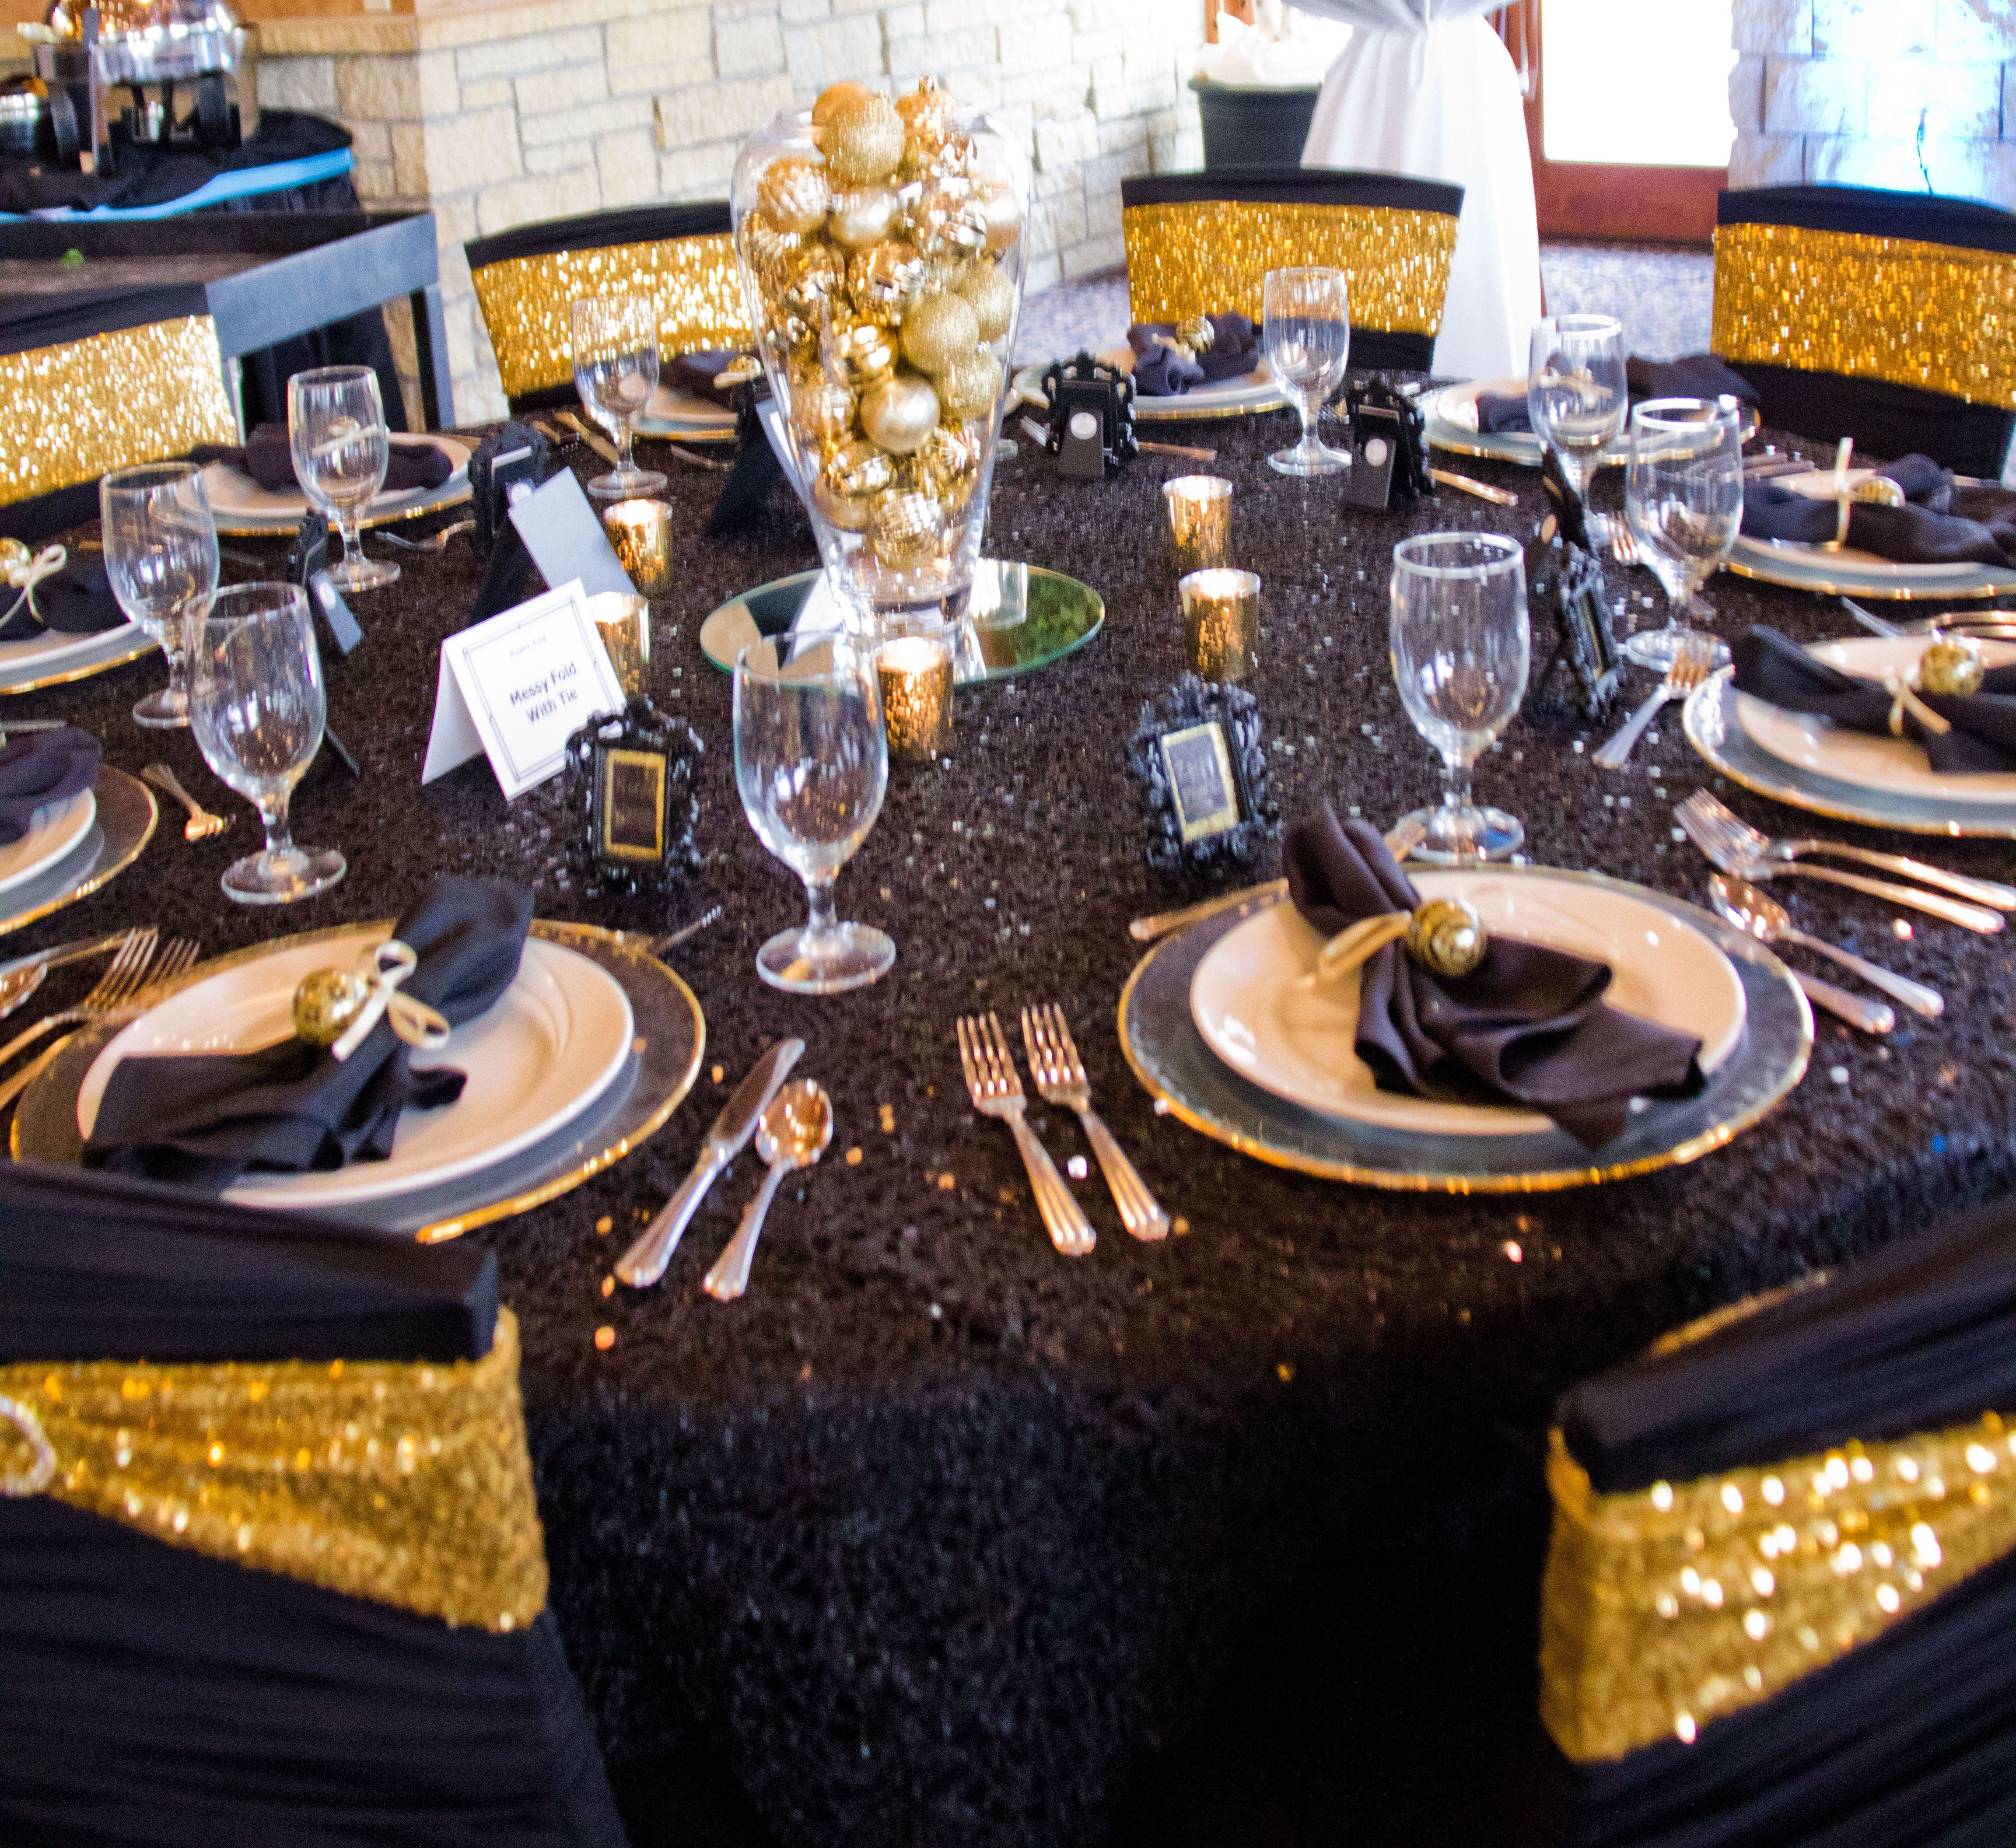 Black Ruched Chair Covers Office Vs Gaming Reddit Cover With Gold Sequin Spandex Sash Chemical Lace Table Overlay Glass Charger Rim And Ornament Centerpiece